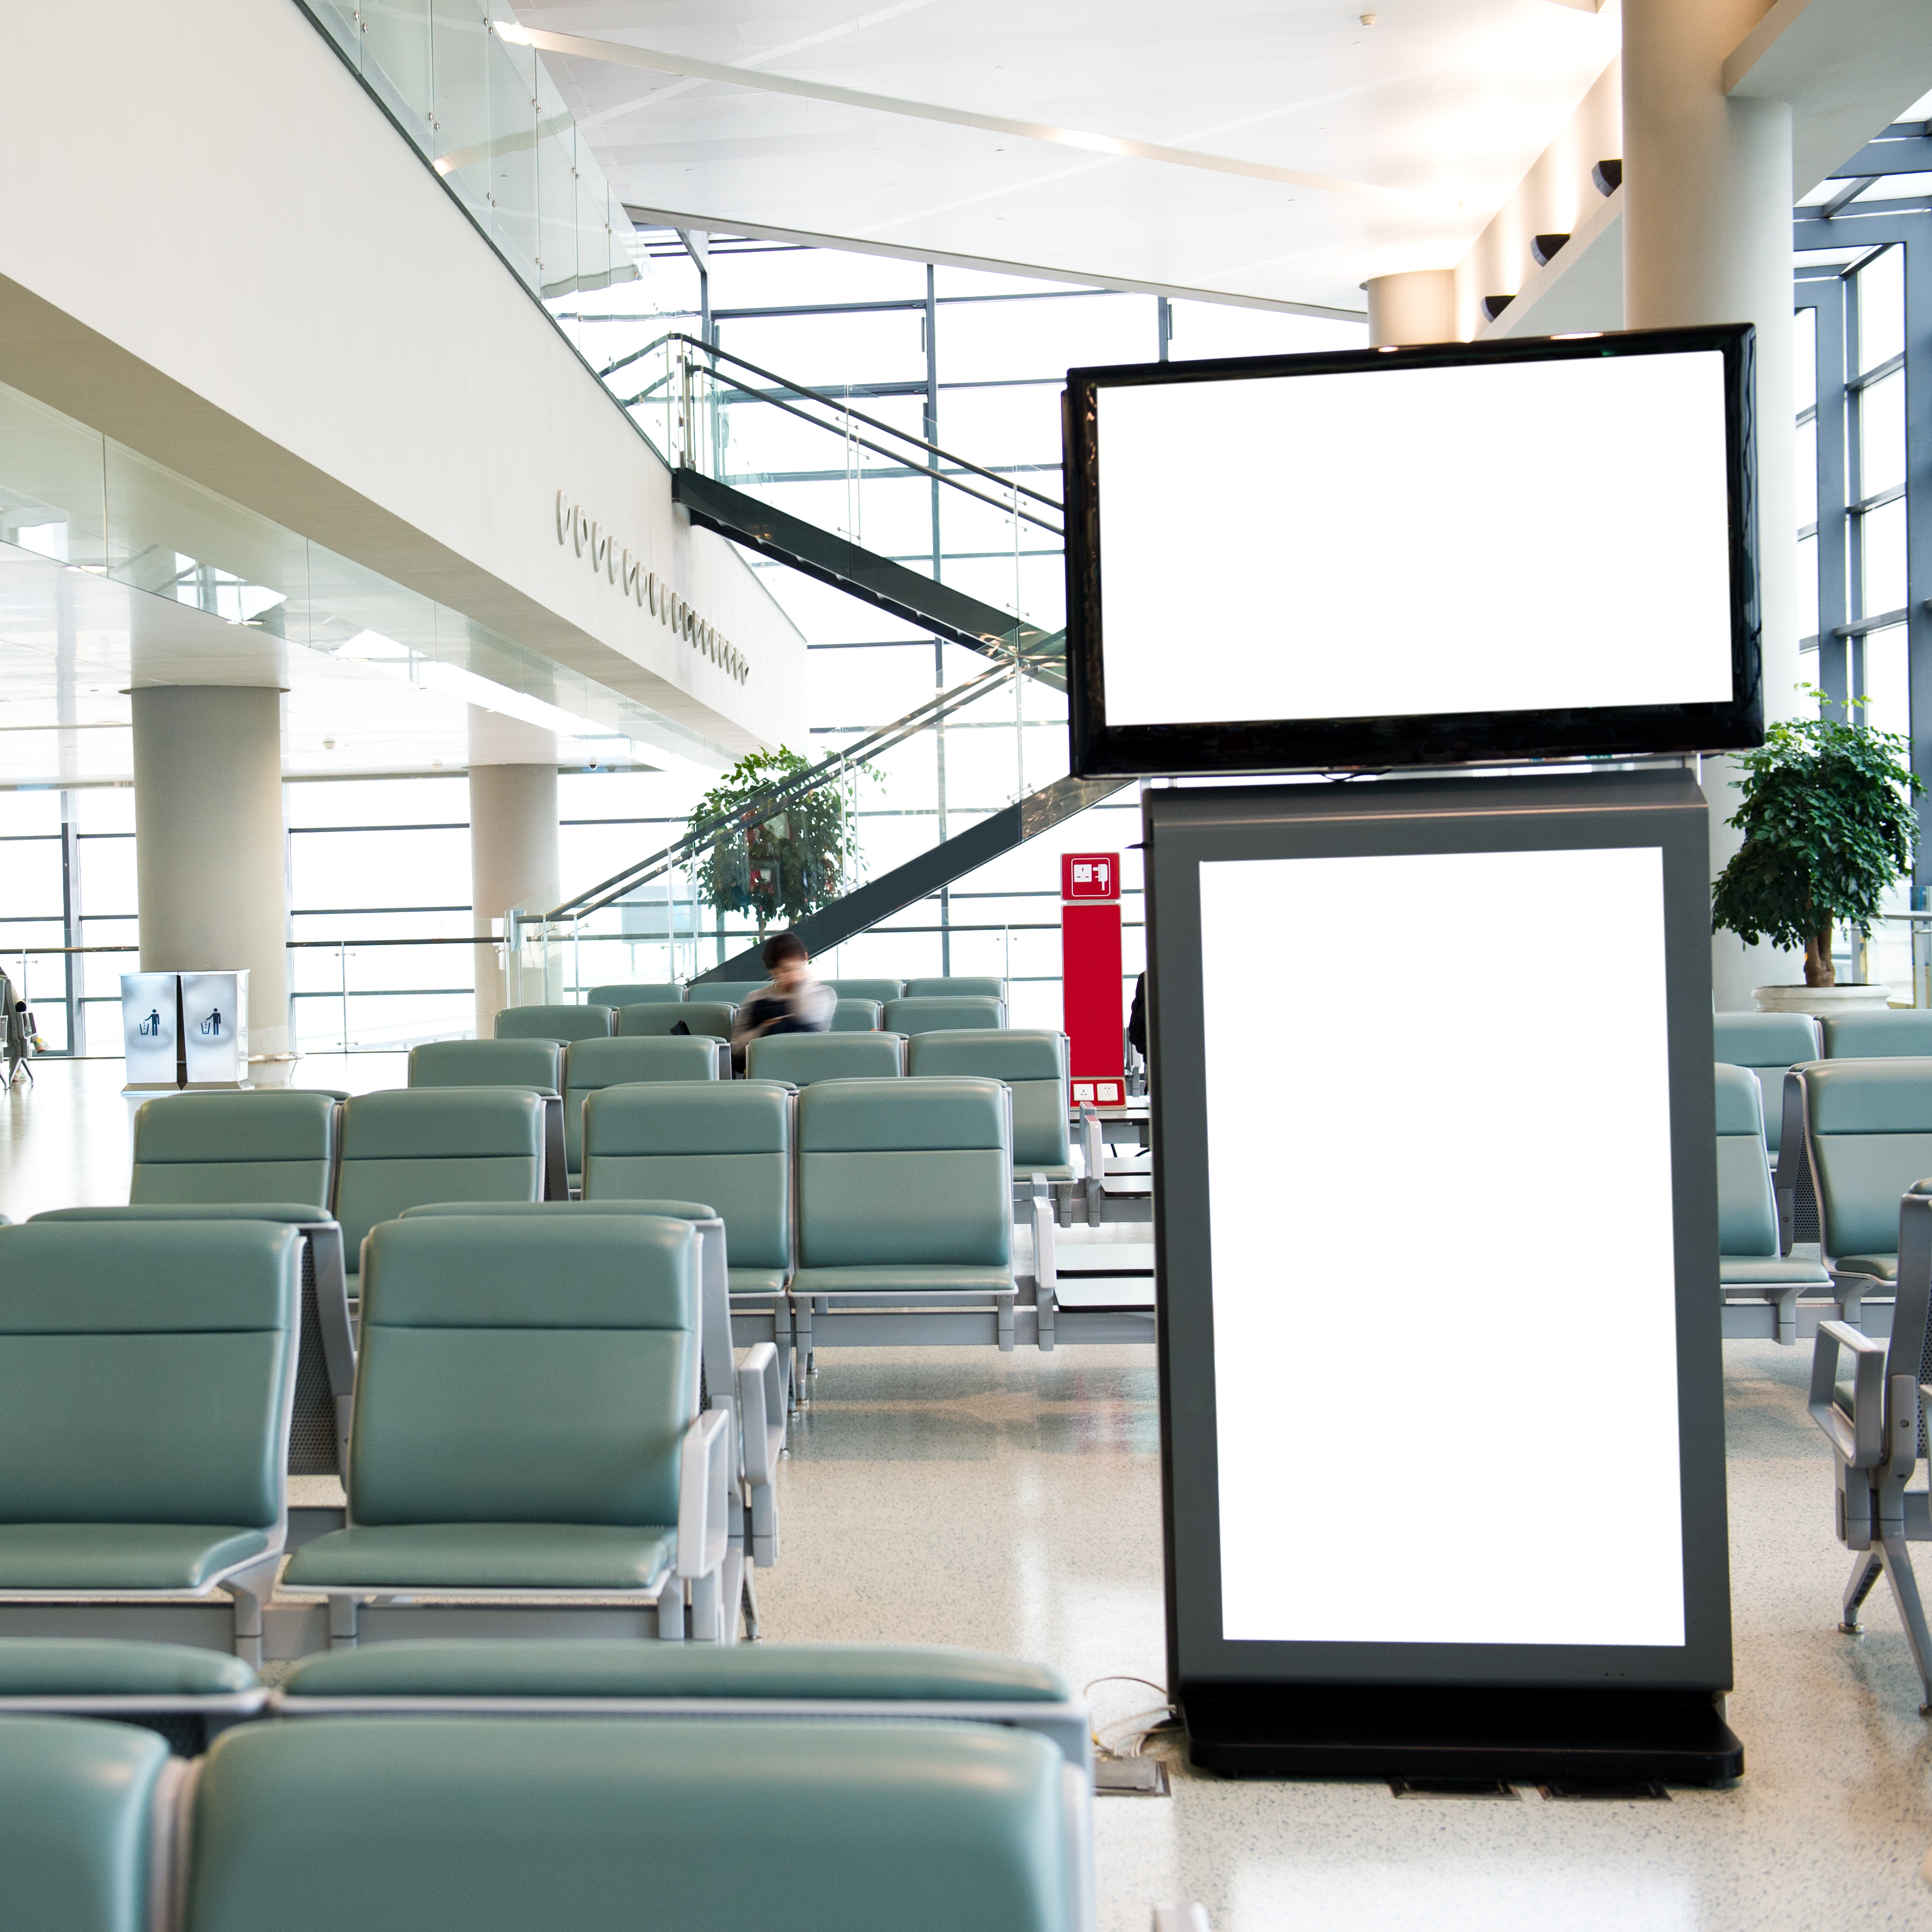 Digital signage display in waiting room lobby